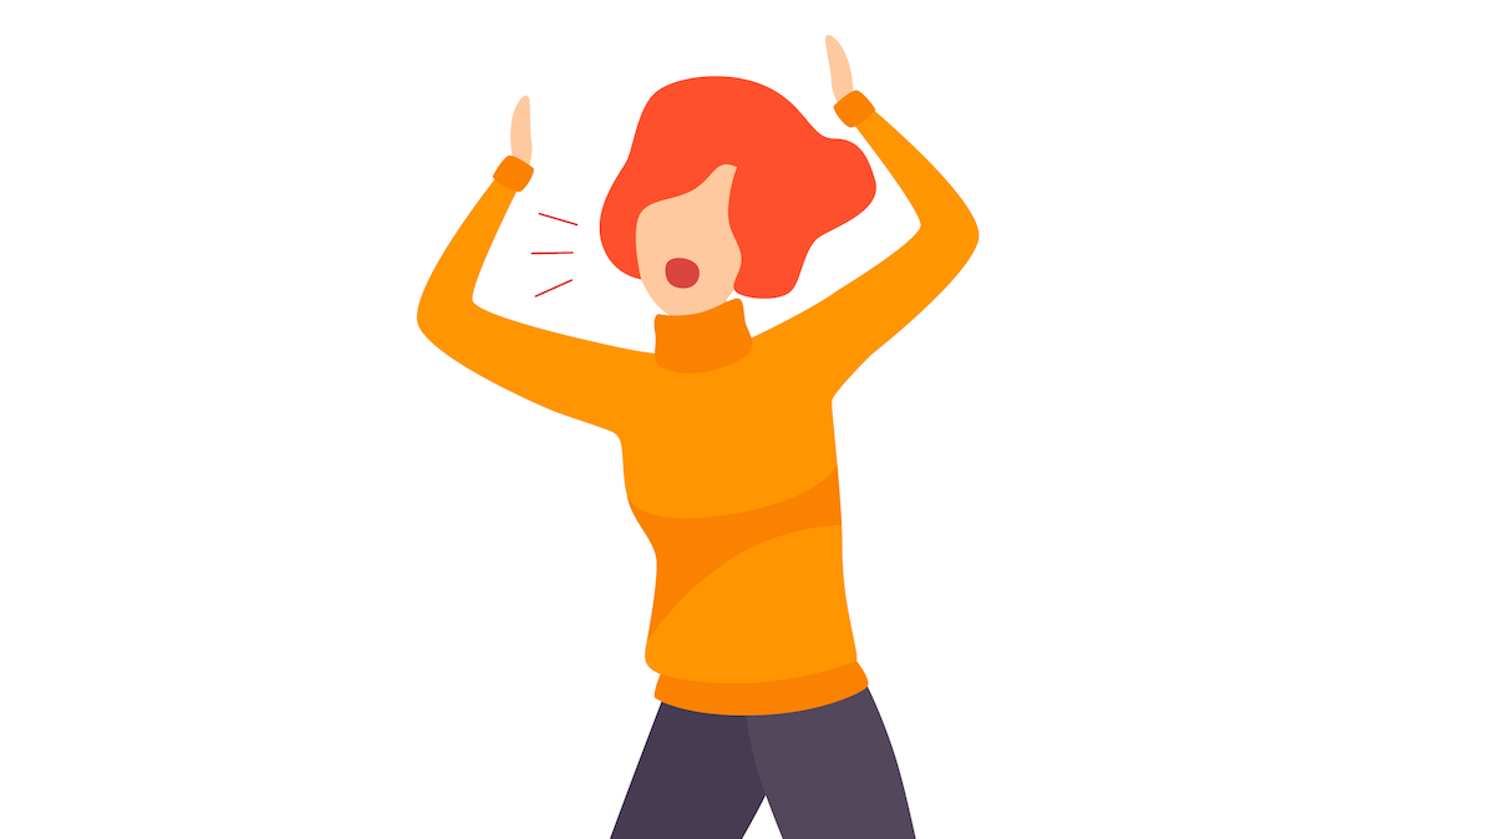 Illustration of woman shouting